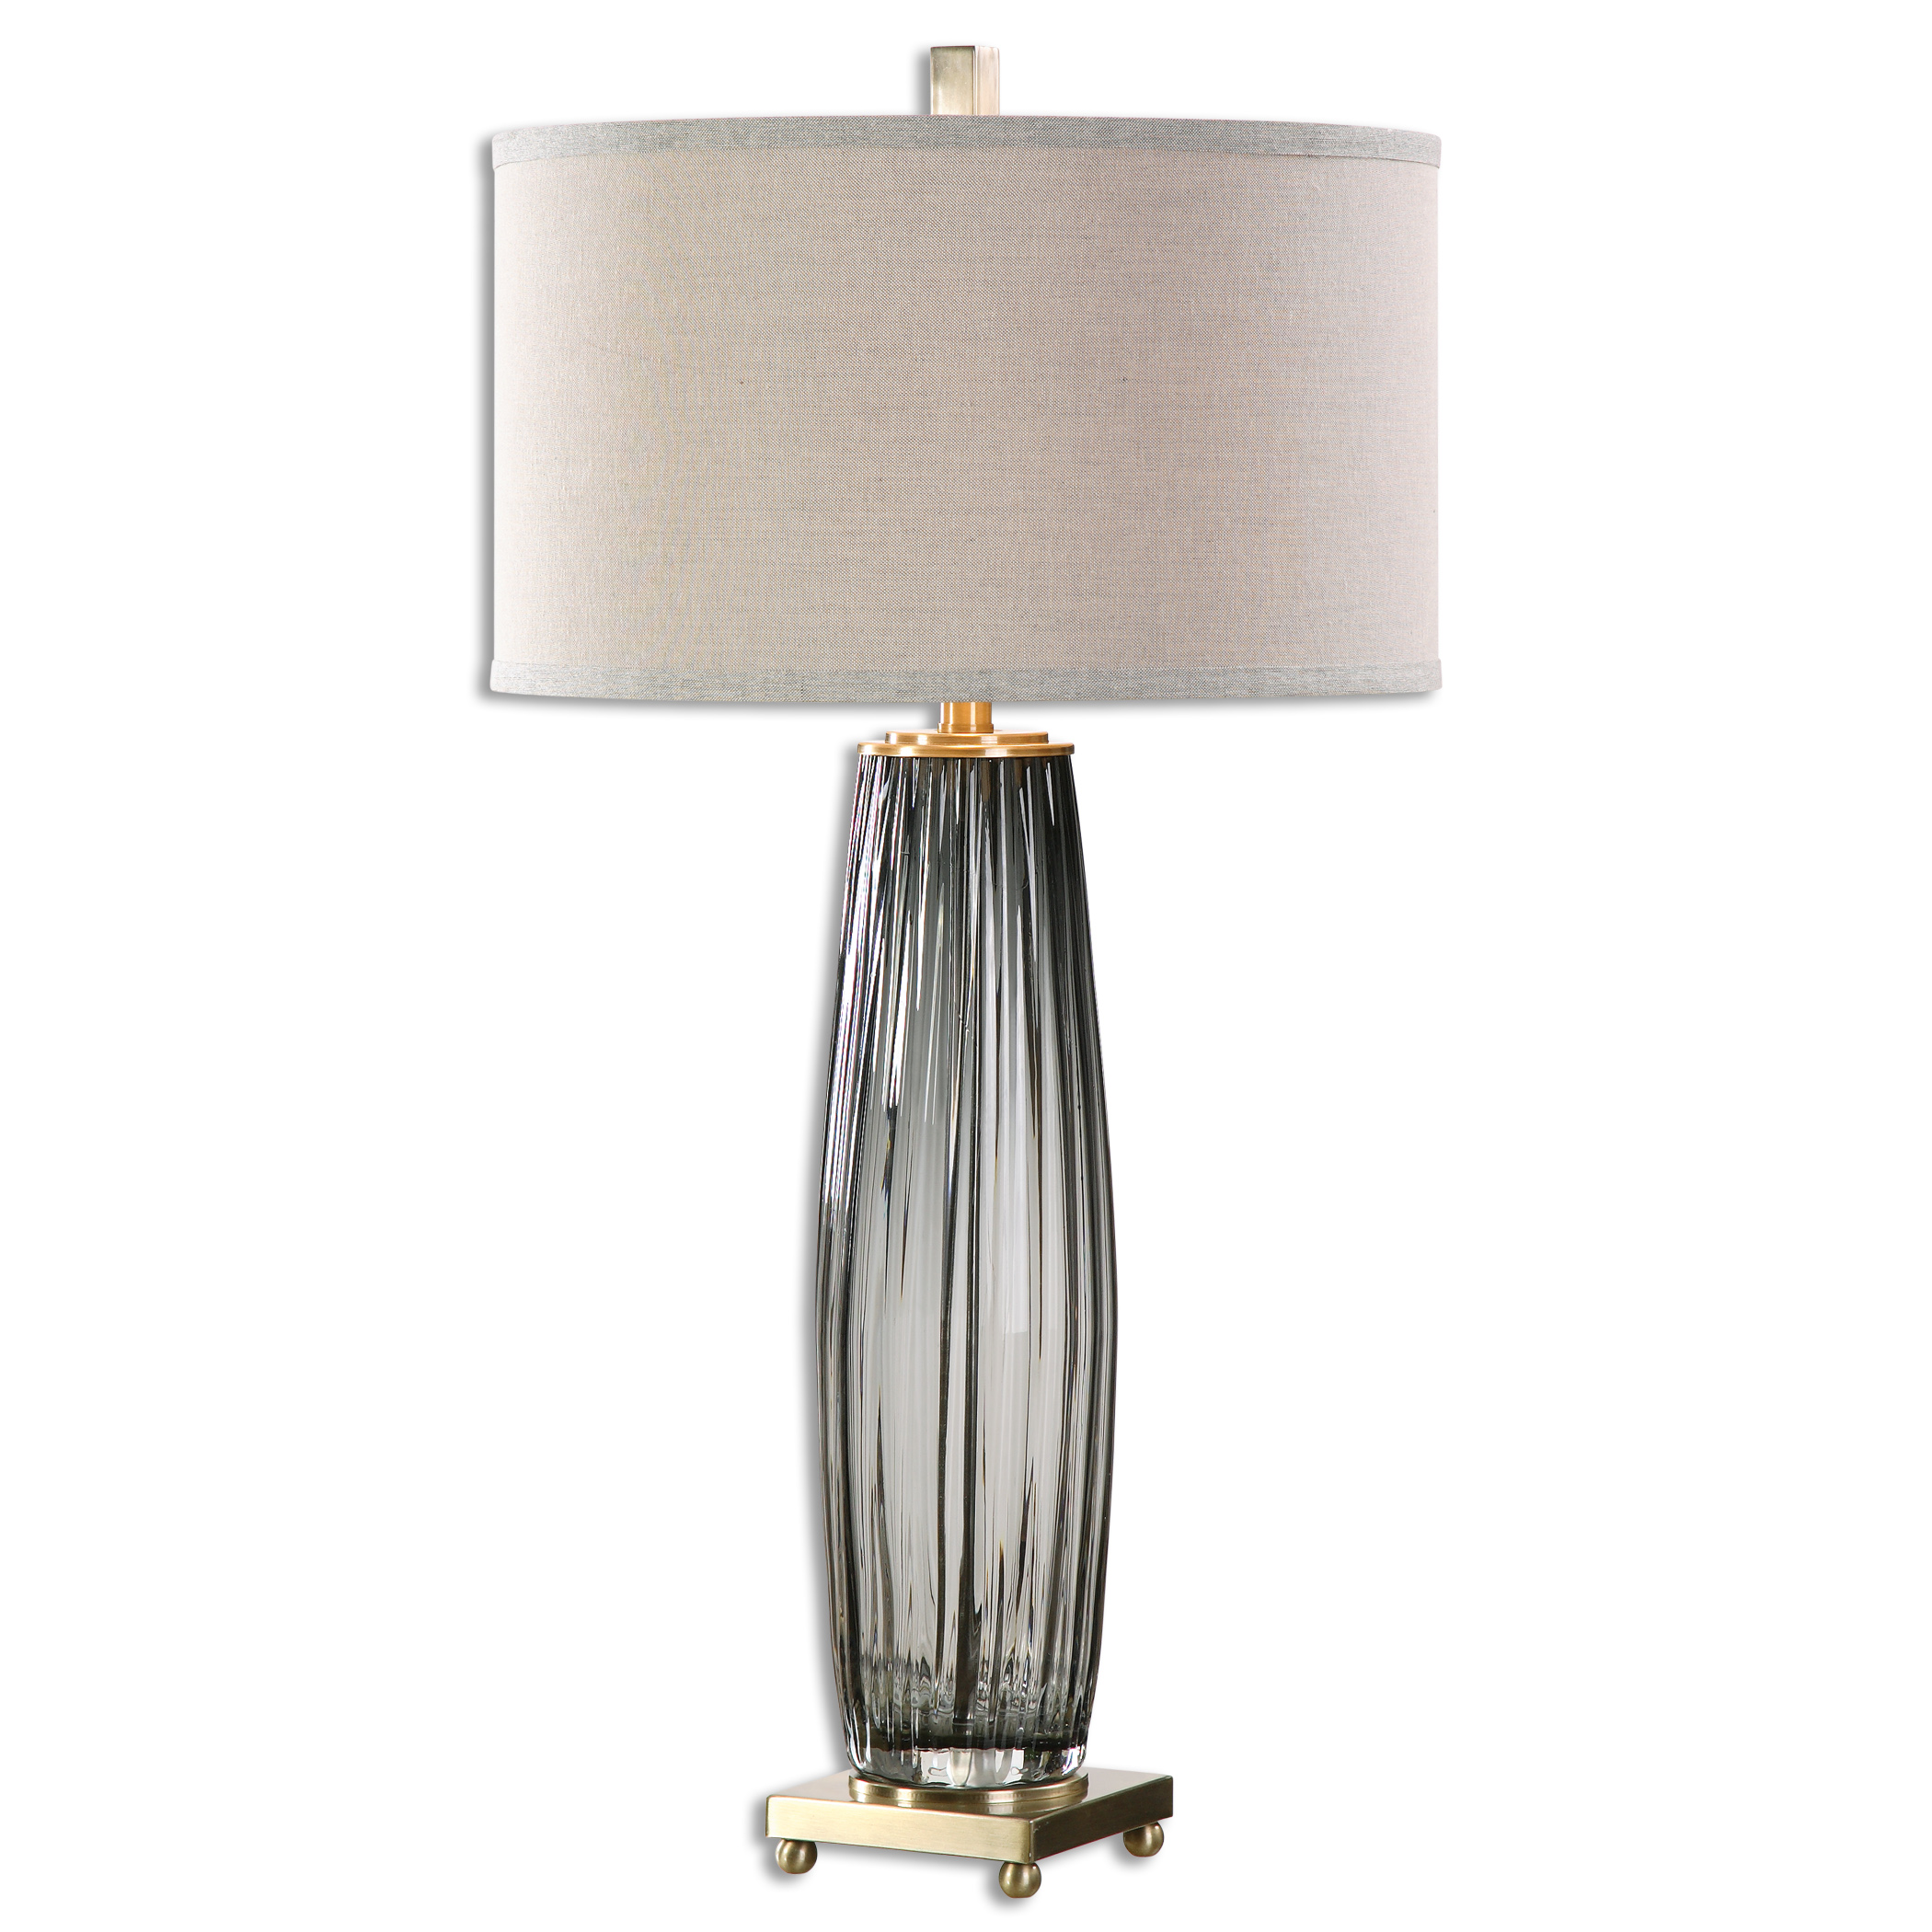 Viliminore Table Lamp